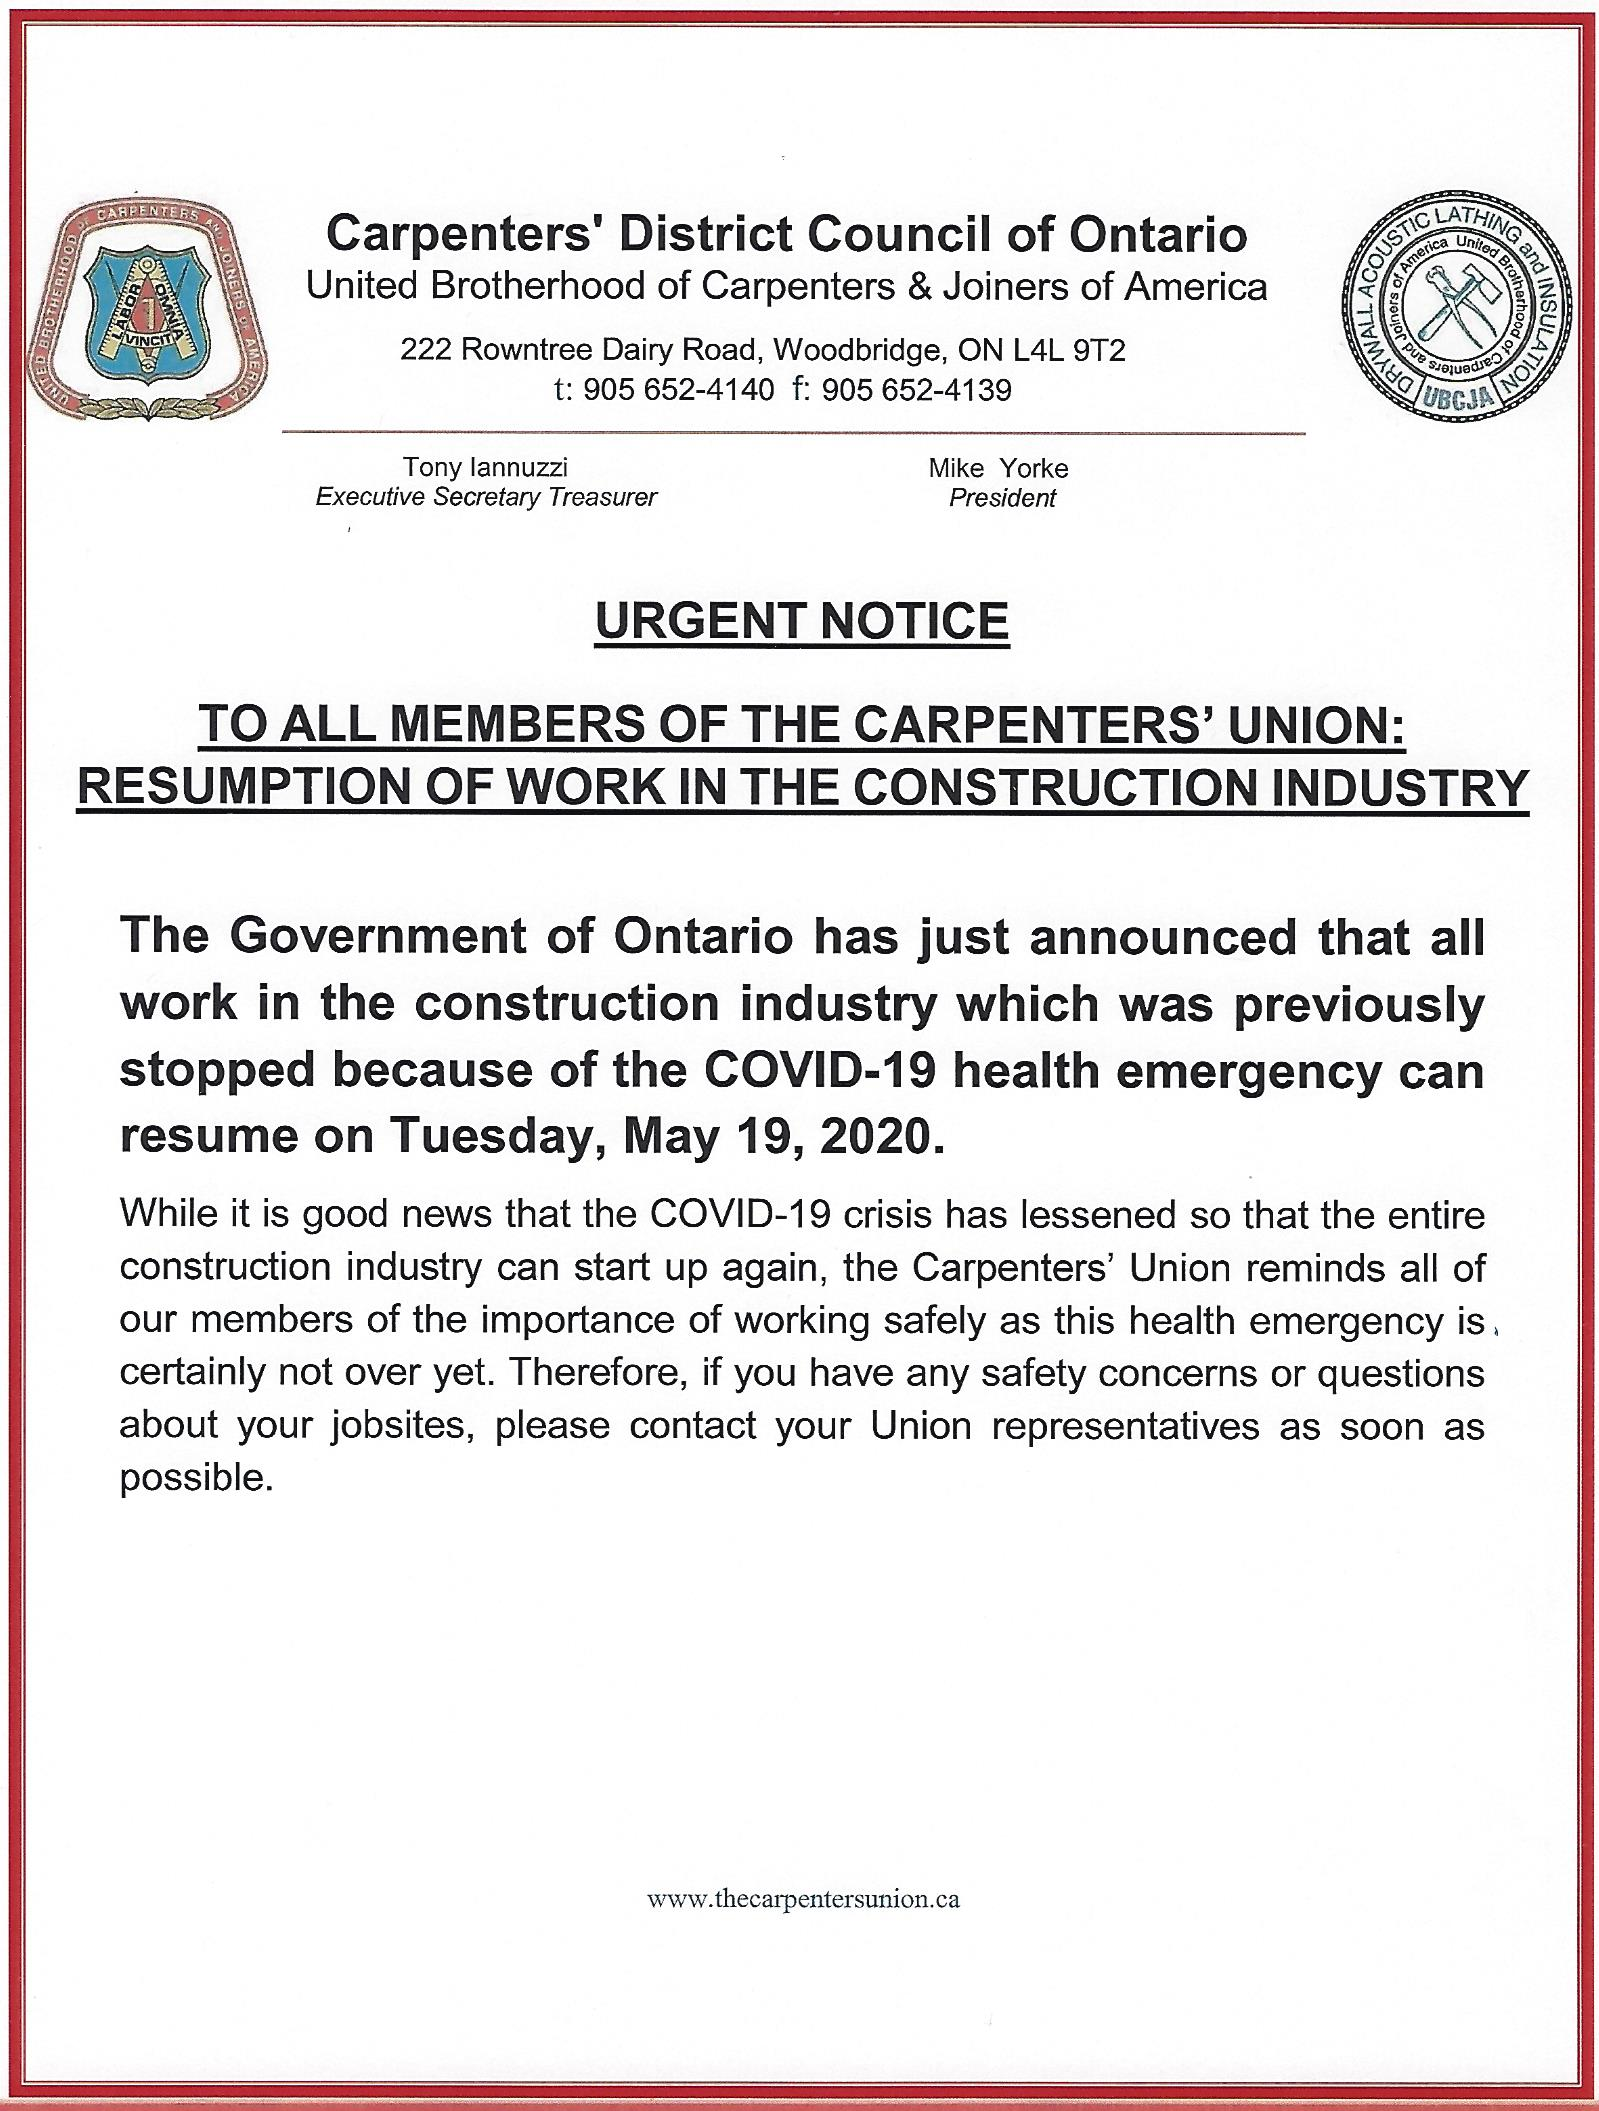 2020.05.14-Resumption_of_work_in_the_Construction_Industry.jpg